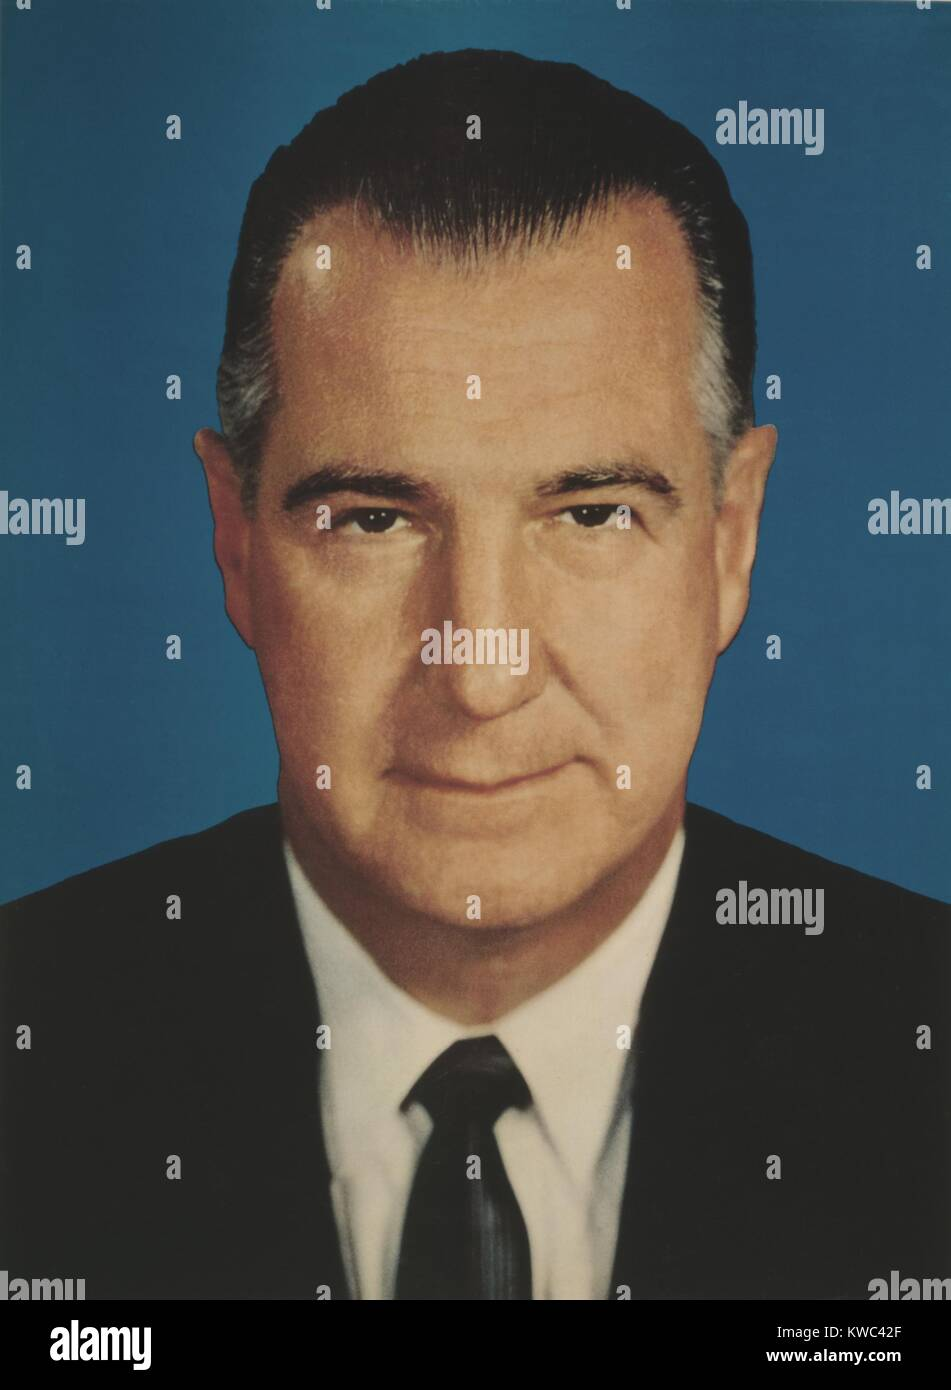 Vice President Spiro Agnew, in 1968 Republican Presidential campaign portrait. (BSLOC_2015_14_41) - Stock Image